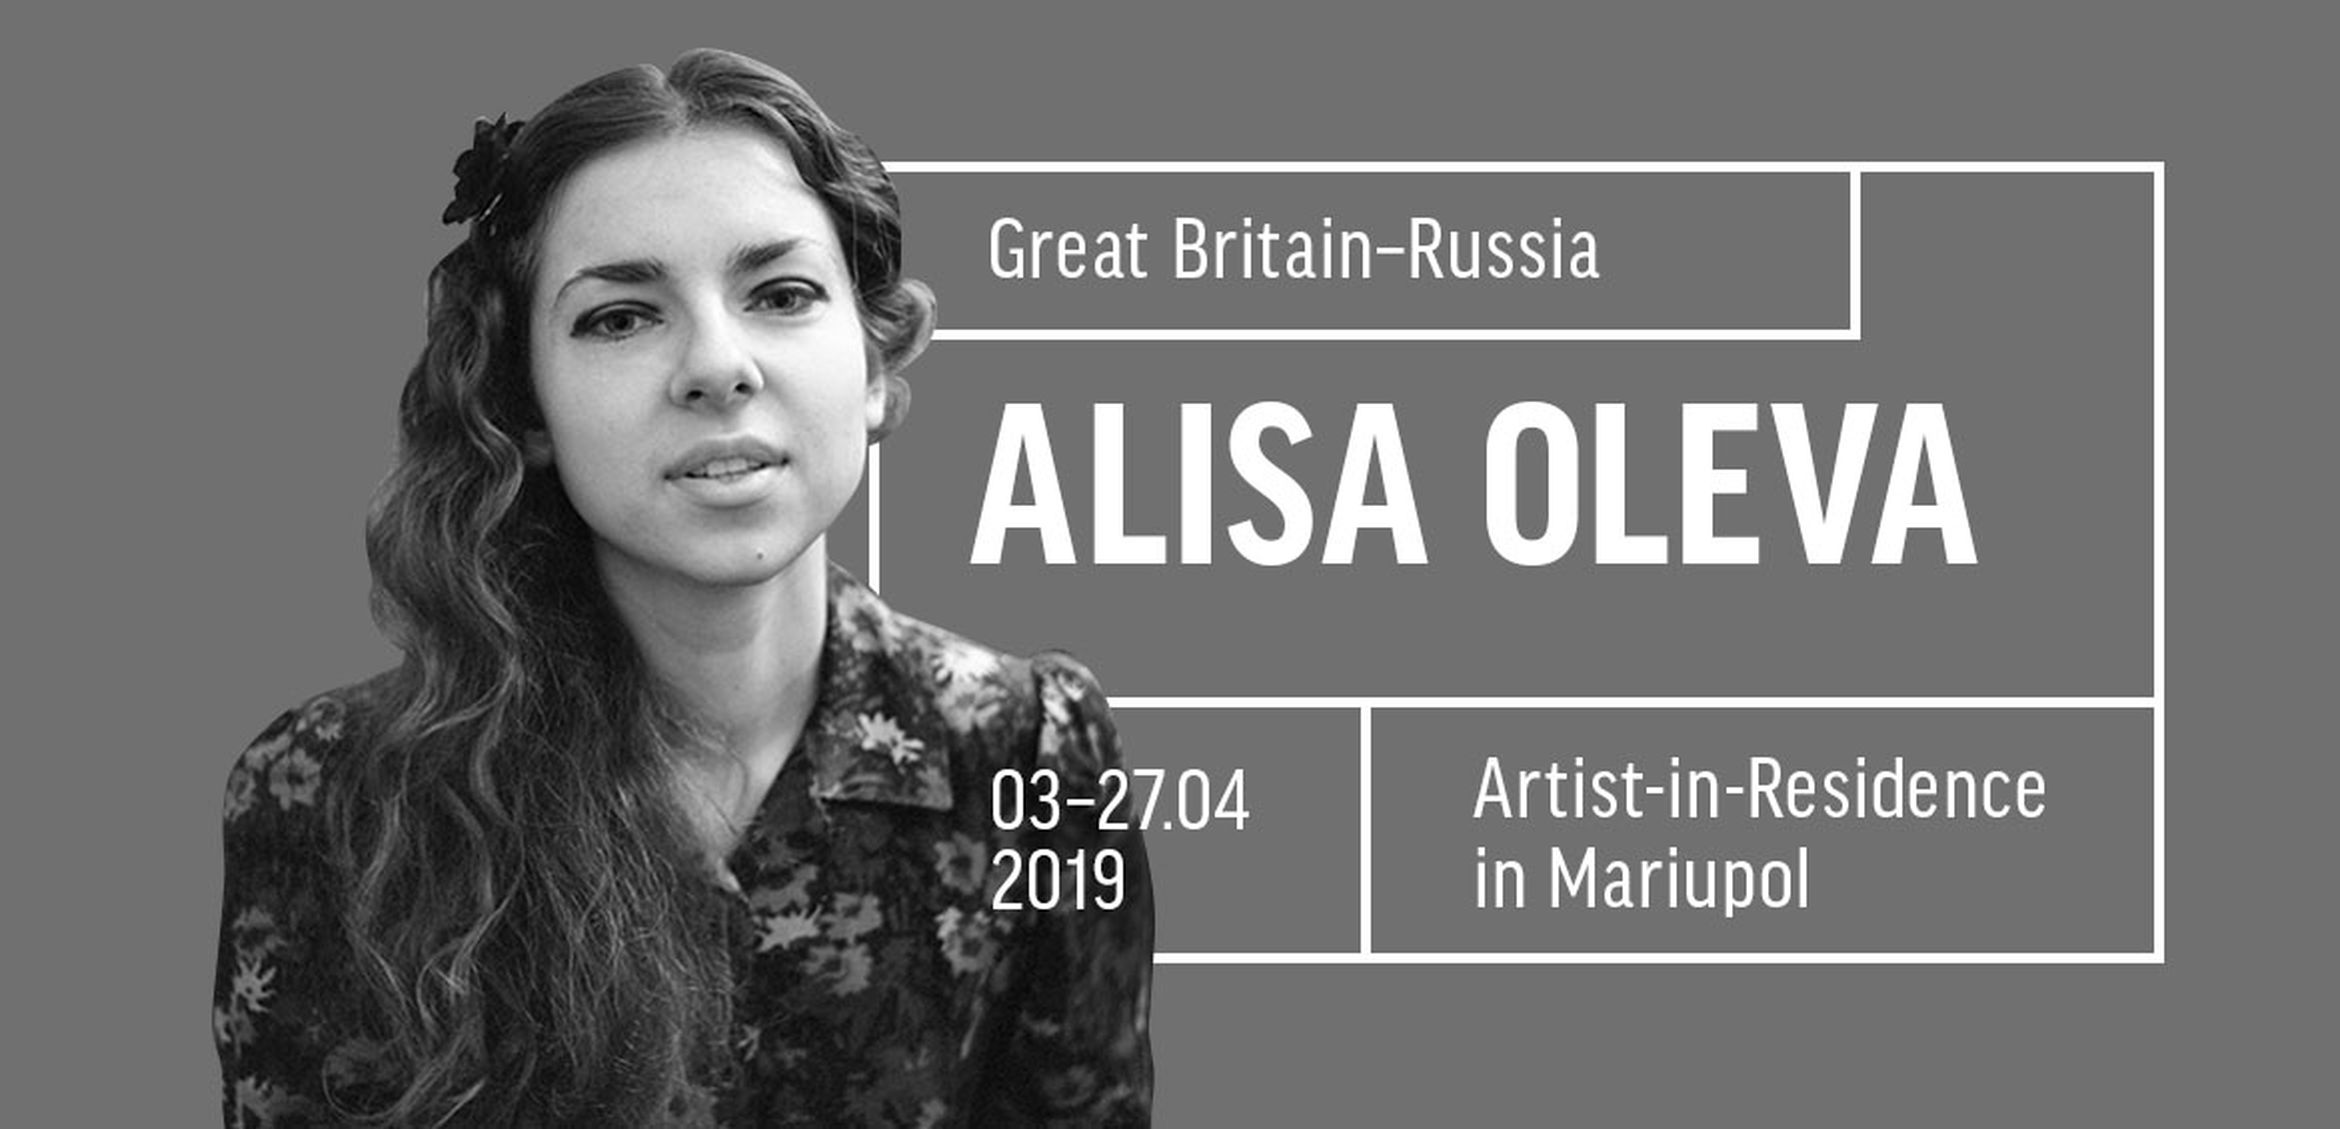 The Residency of Artist  Alisa Oleva  in Mariupol